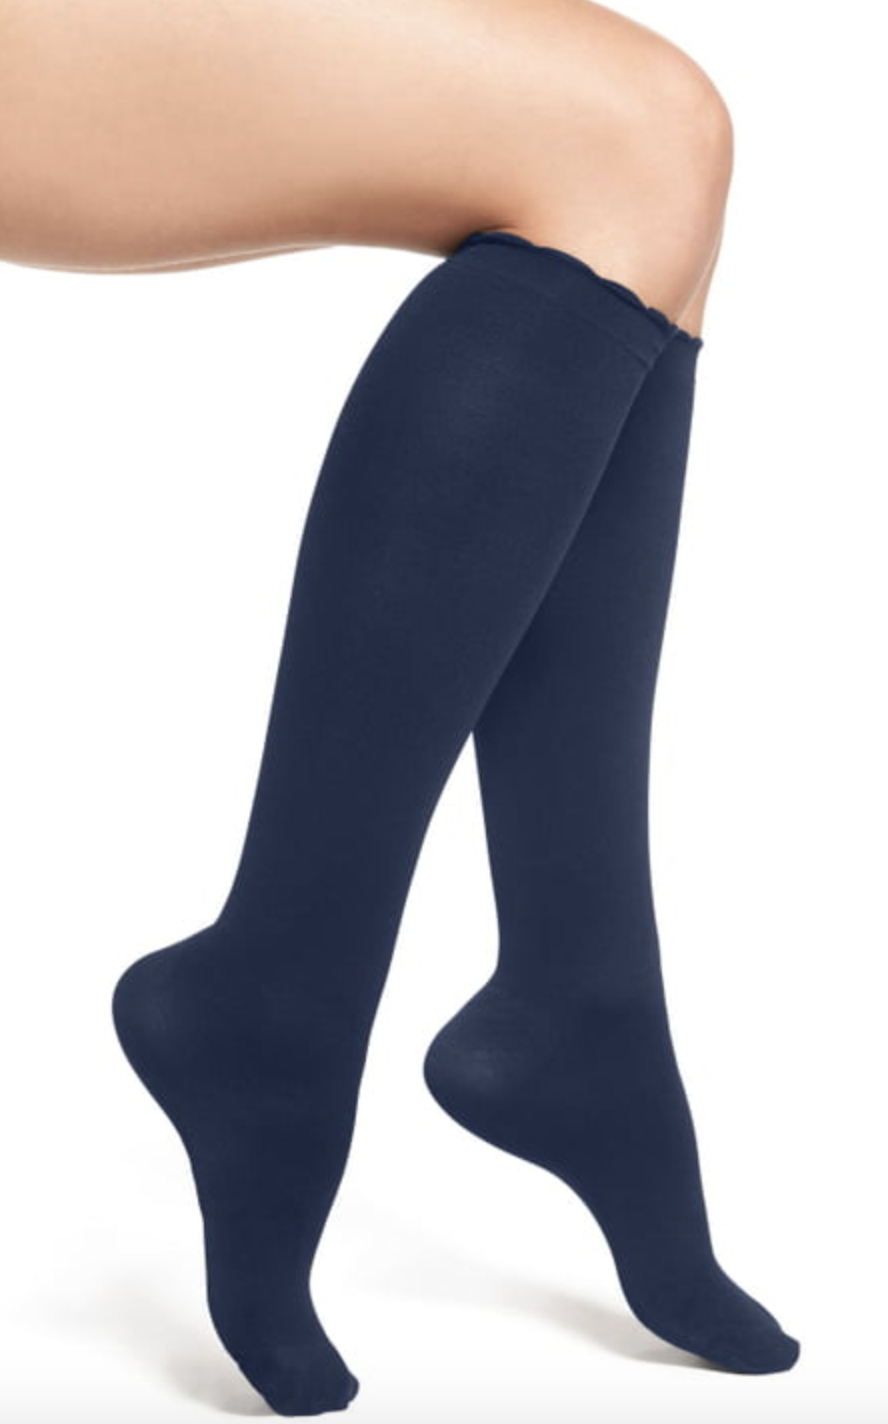 Black knee high compression socks